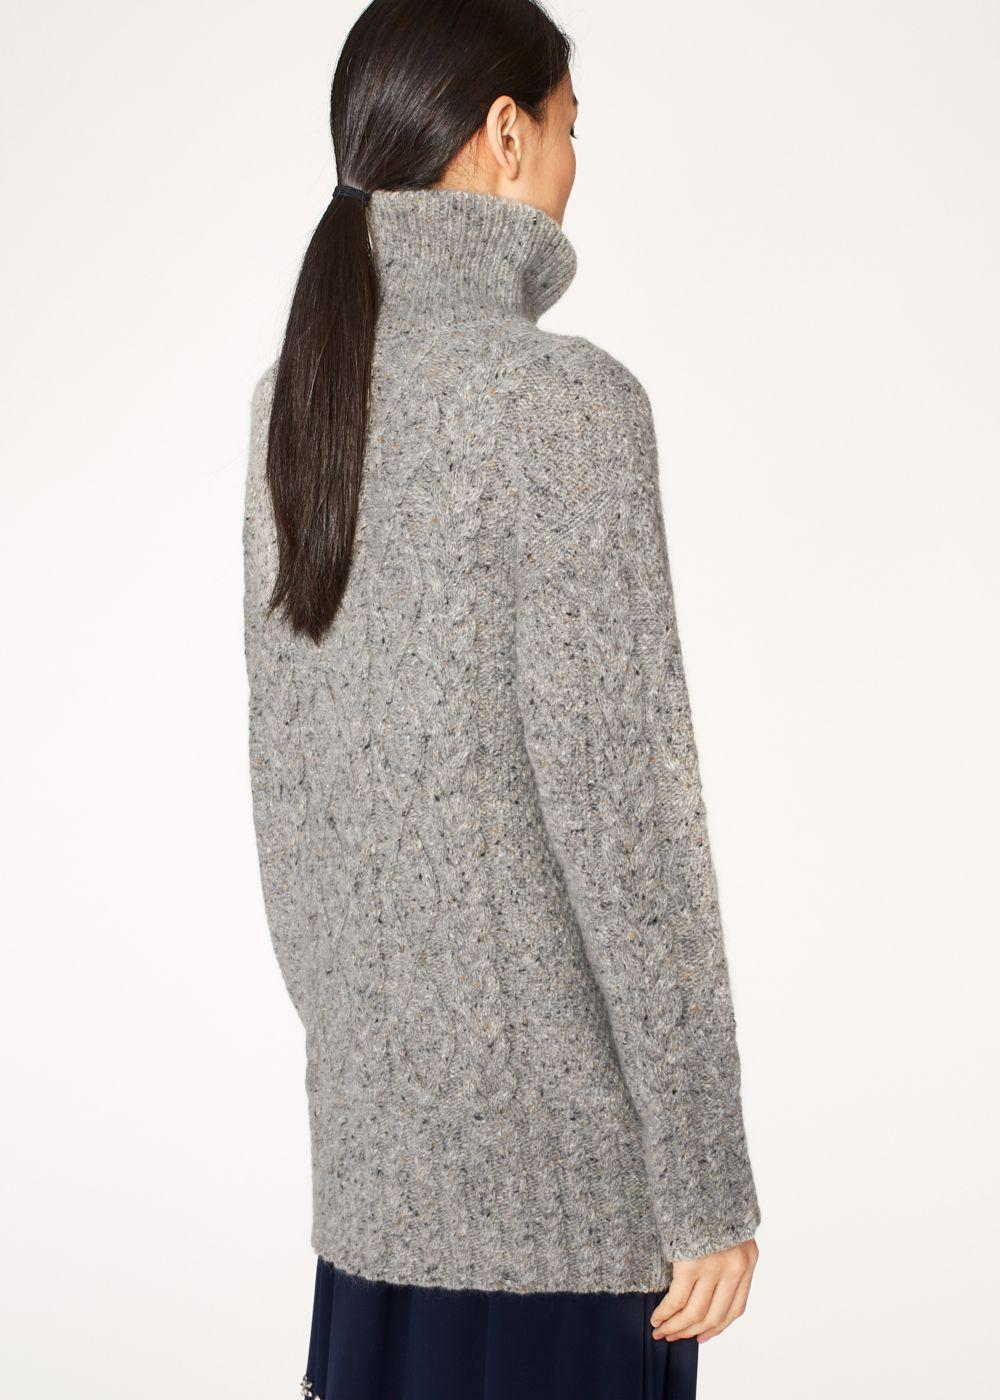 Paul smith Women's Oversized Grey Cable Knit Wool-Mohair High-Neck ...